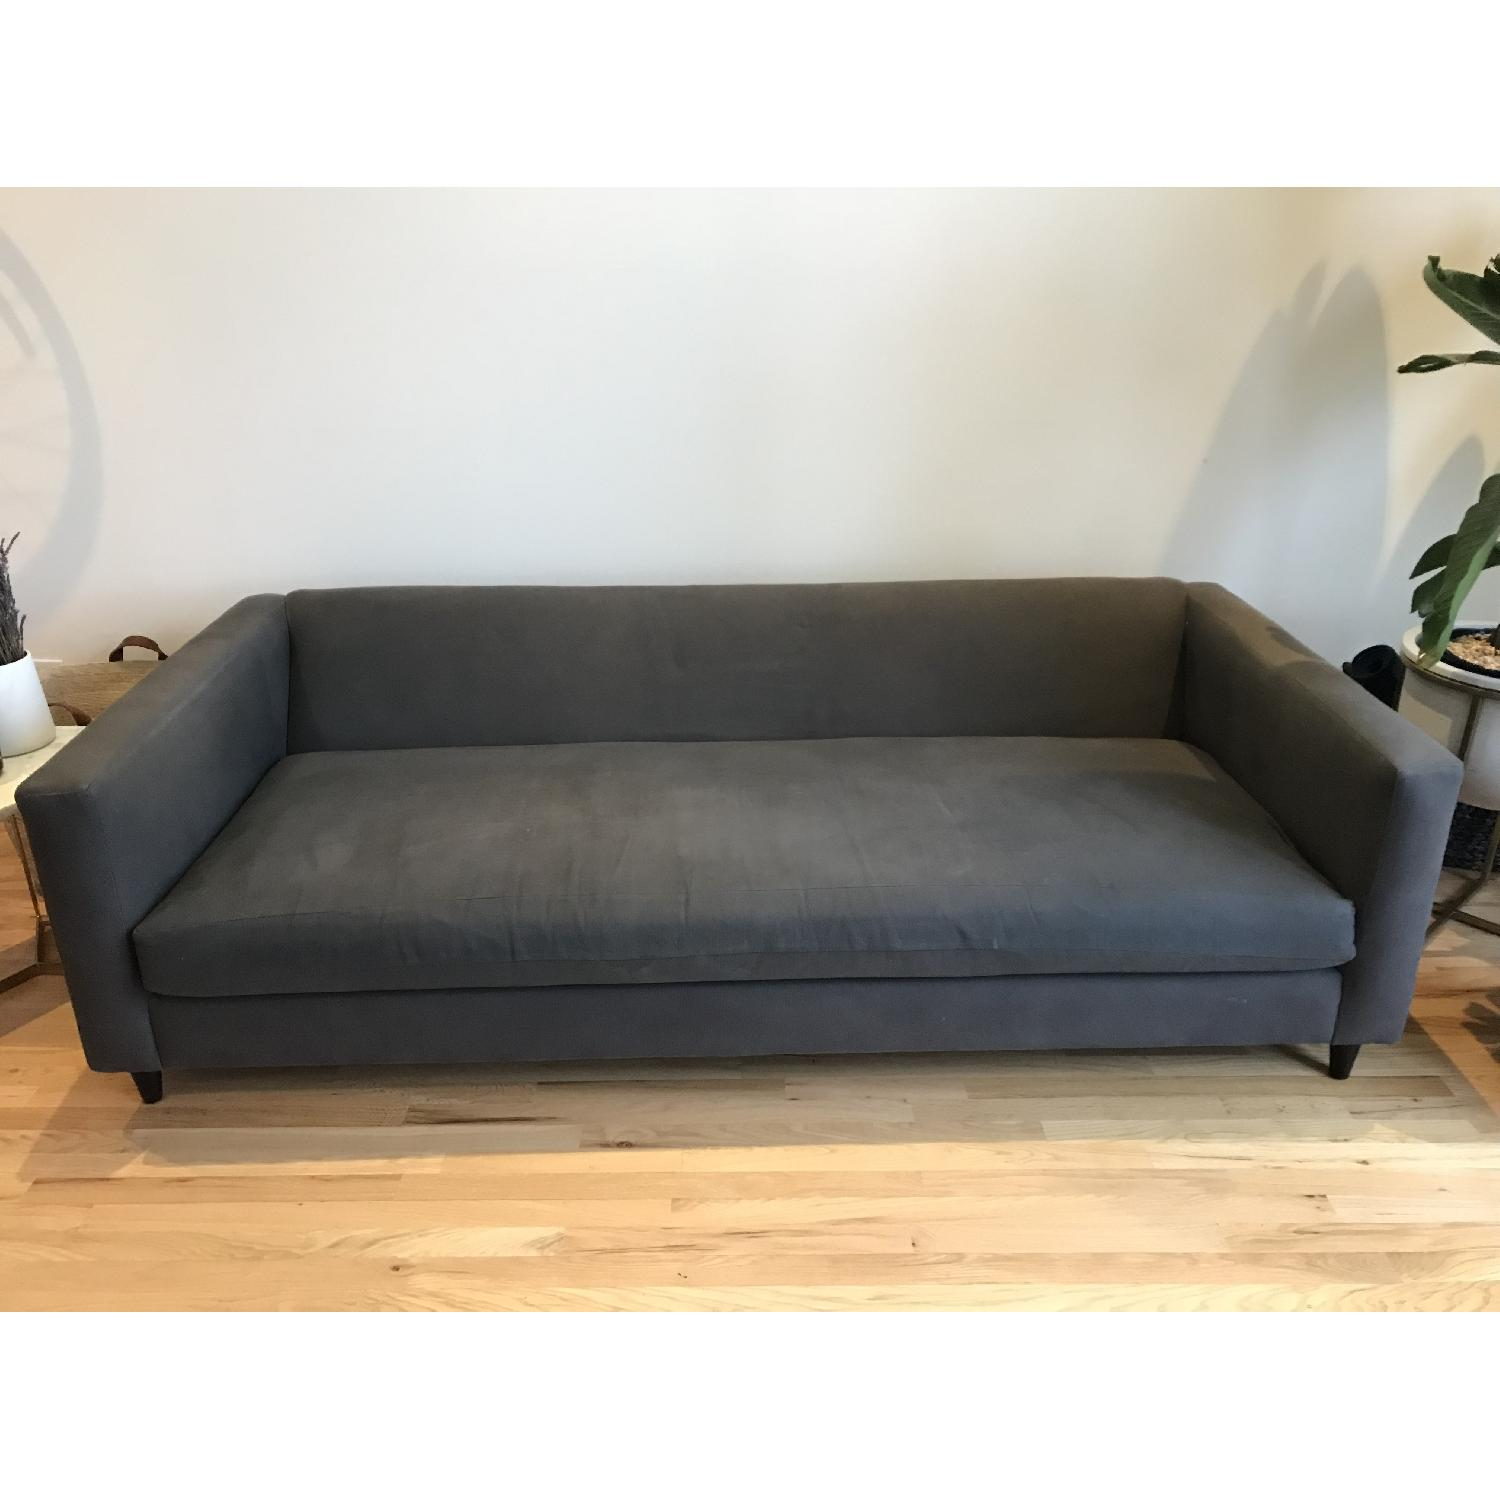 CB2 Movie Sofa in Dark Grey/Blue-0